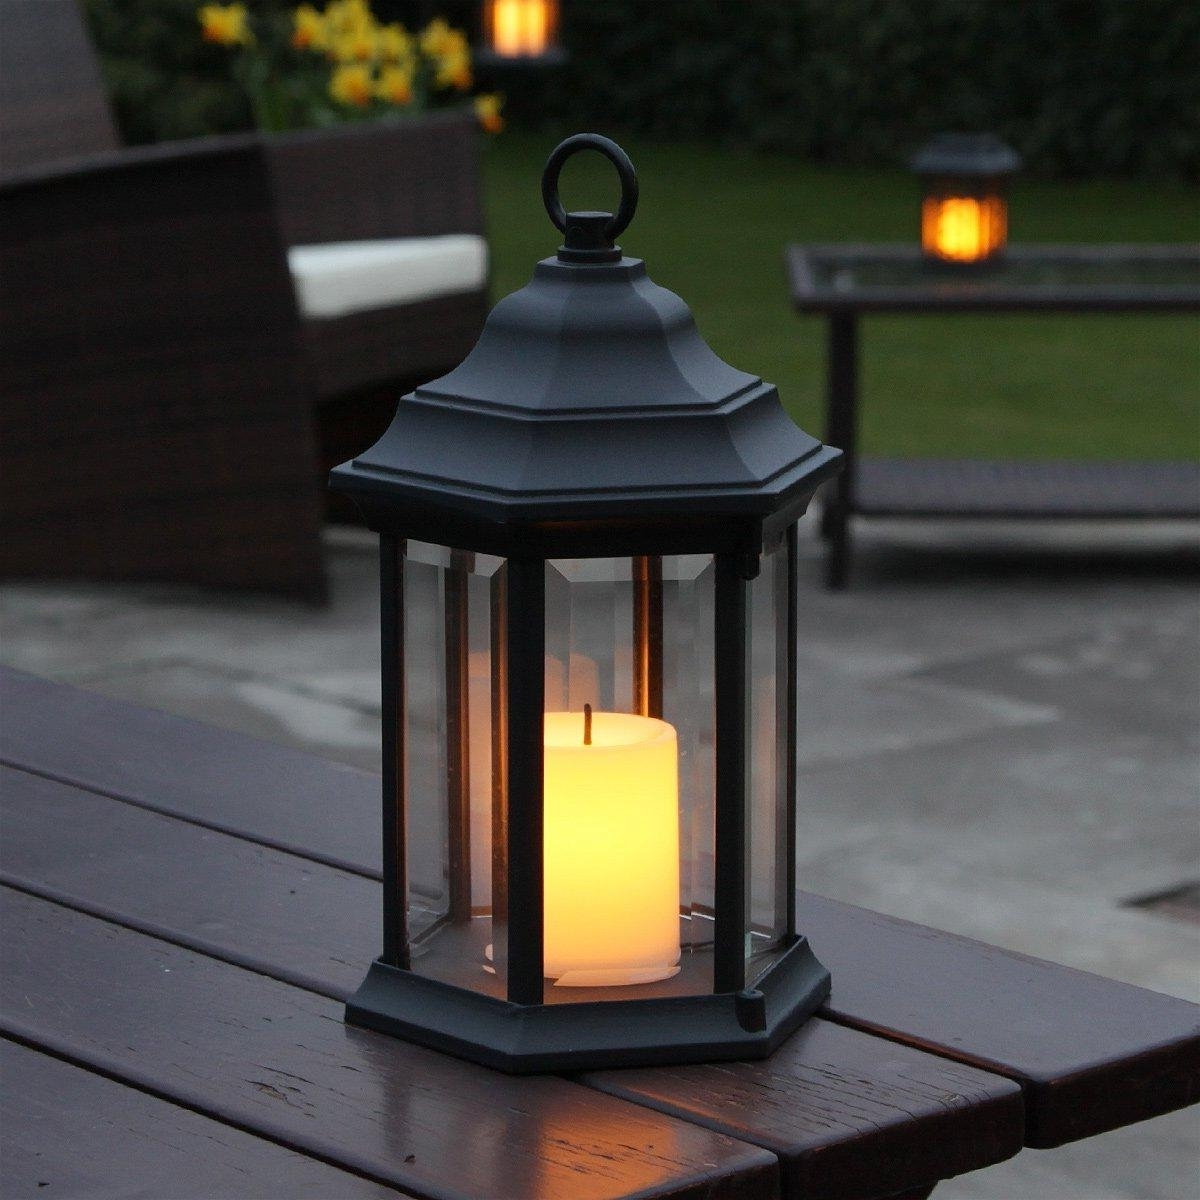 Famous Outdoor Lanterns With Battery Candles Within Outdoor Lighting For Sale – Outdoor Lights Prices, Brands & Review (View 19 of 20)